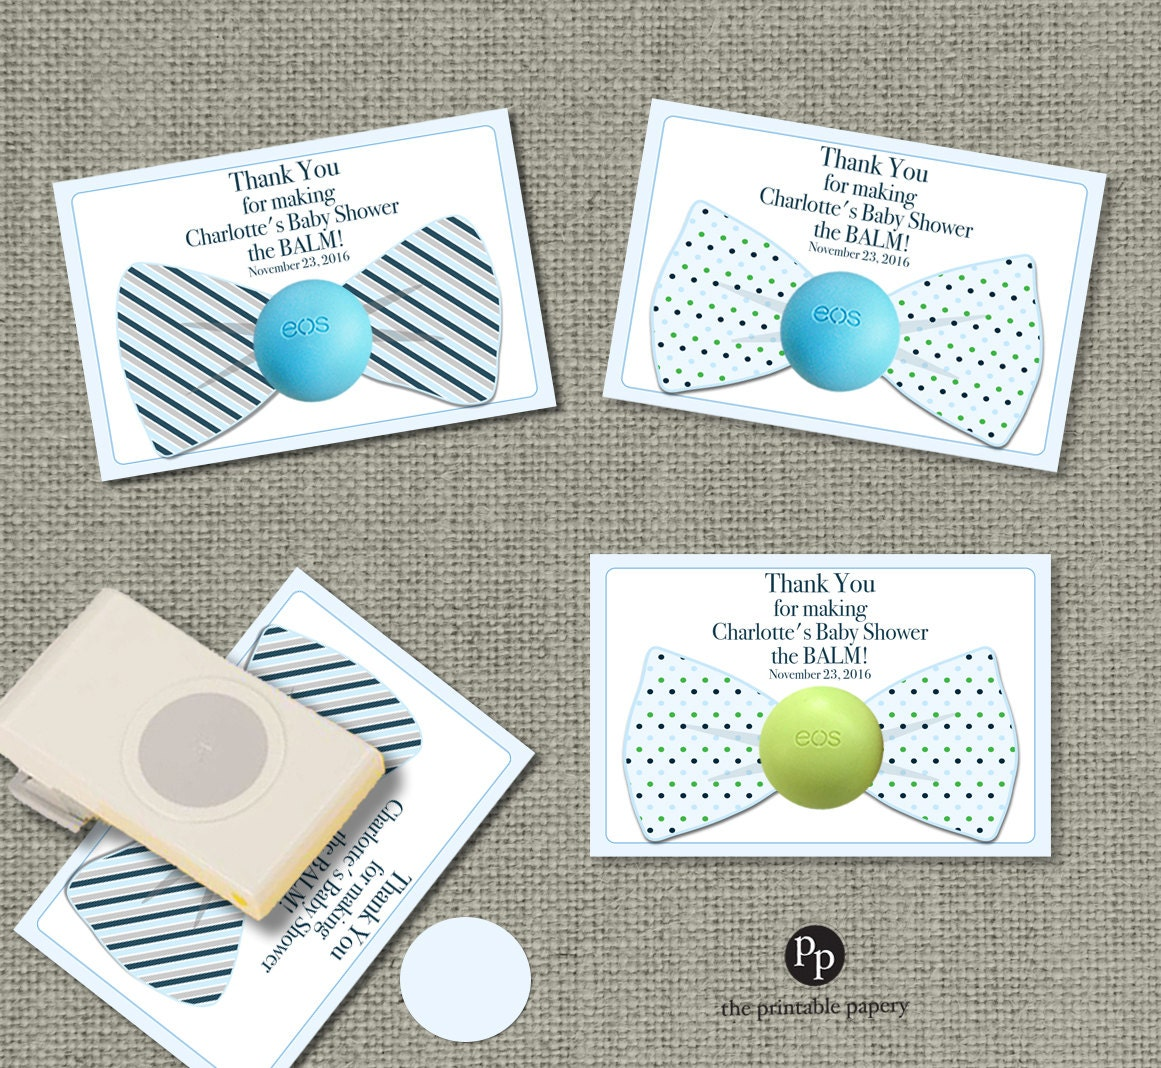 Bow tie baby shower gift tags for eos lip balm gifts thank zoom negle Gallery